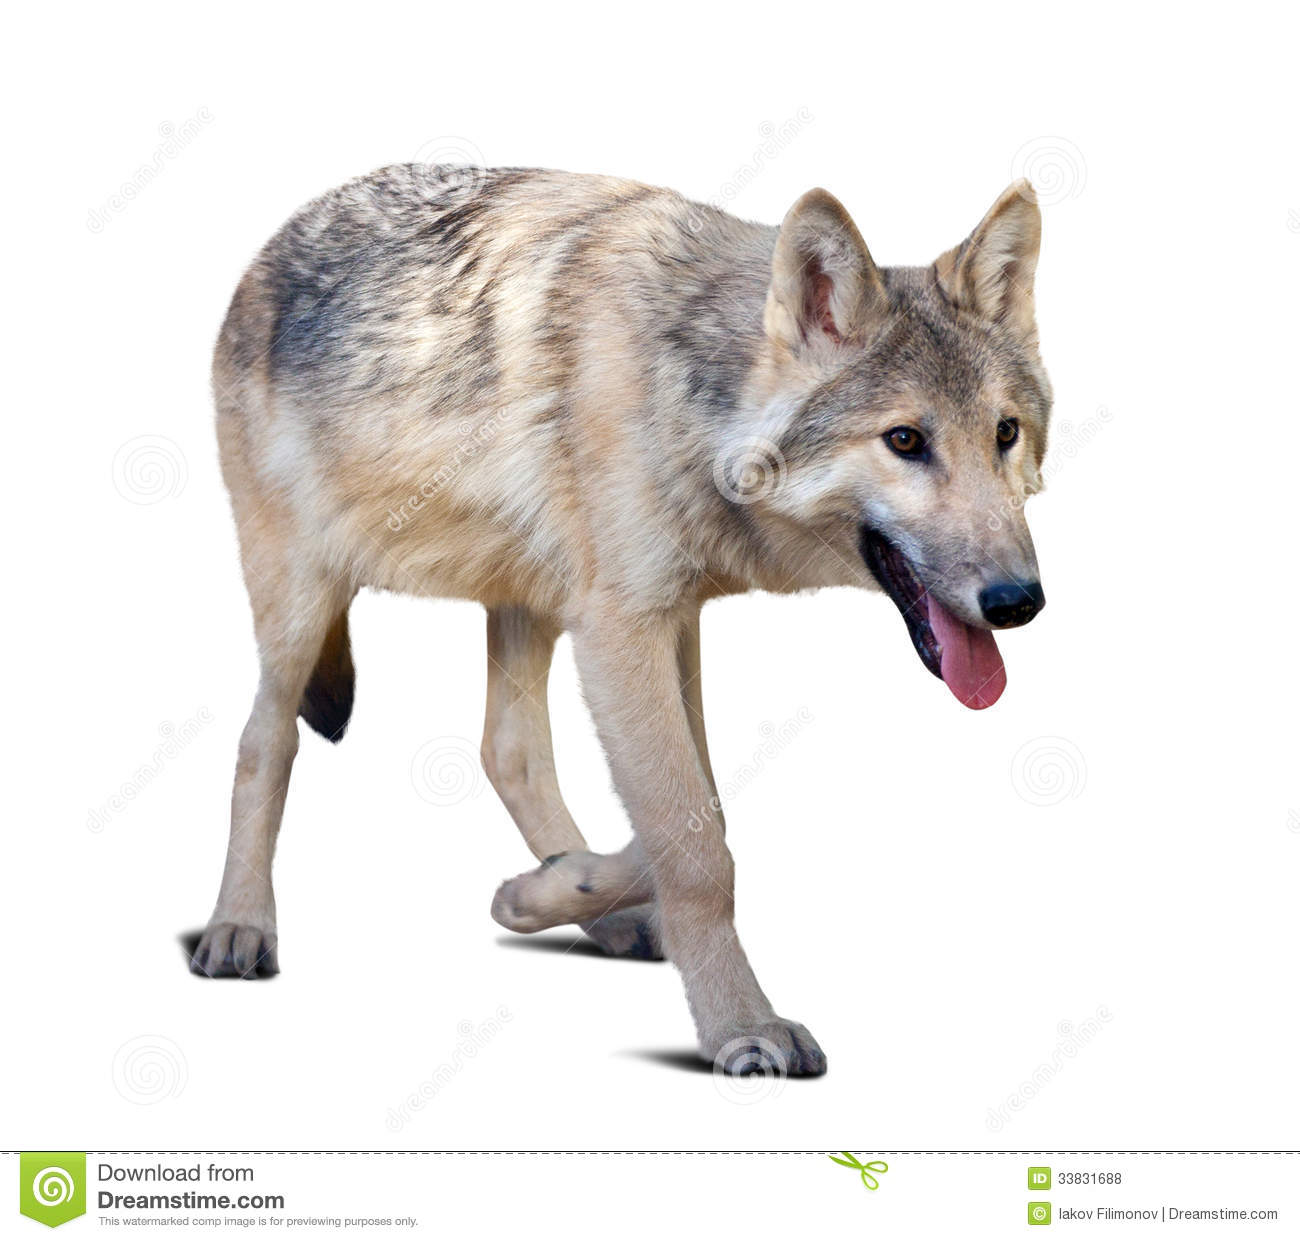 Loup gris de marche photo stock image du fourrure - Photo de loup gris a imprimer ...